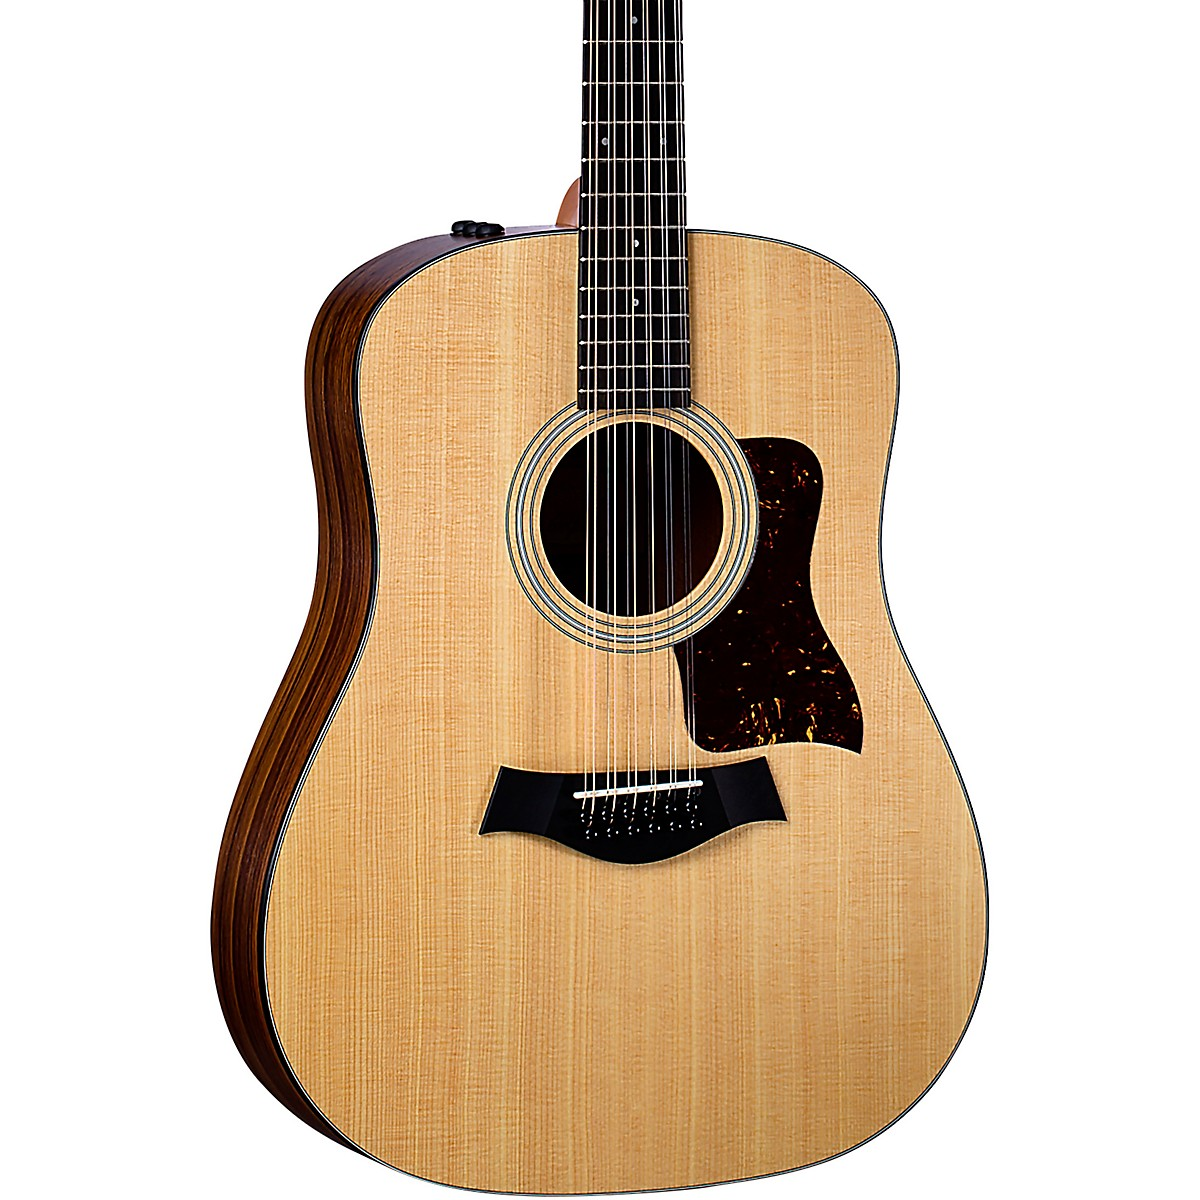 Taylor 150e Rosewood Dreadnought 12-String Acoustic-Electric Guitar